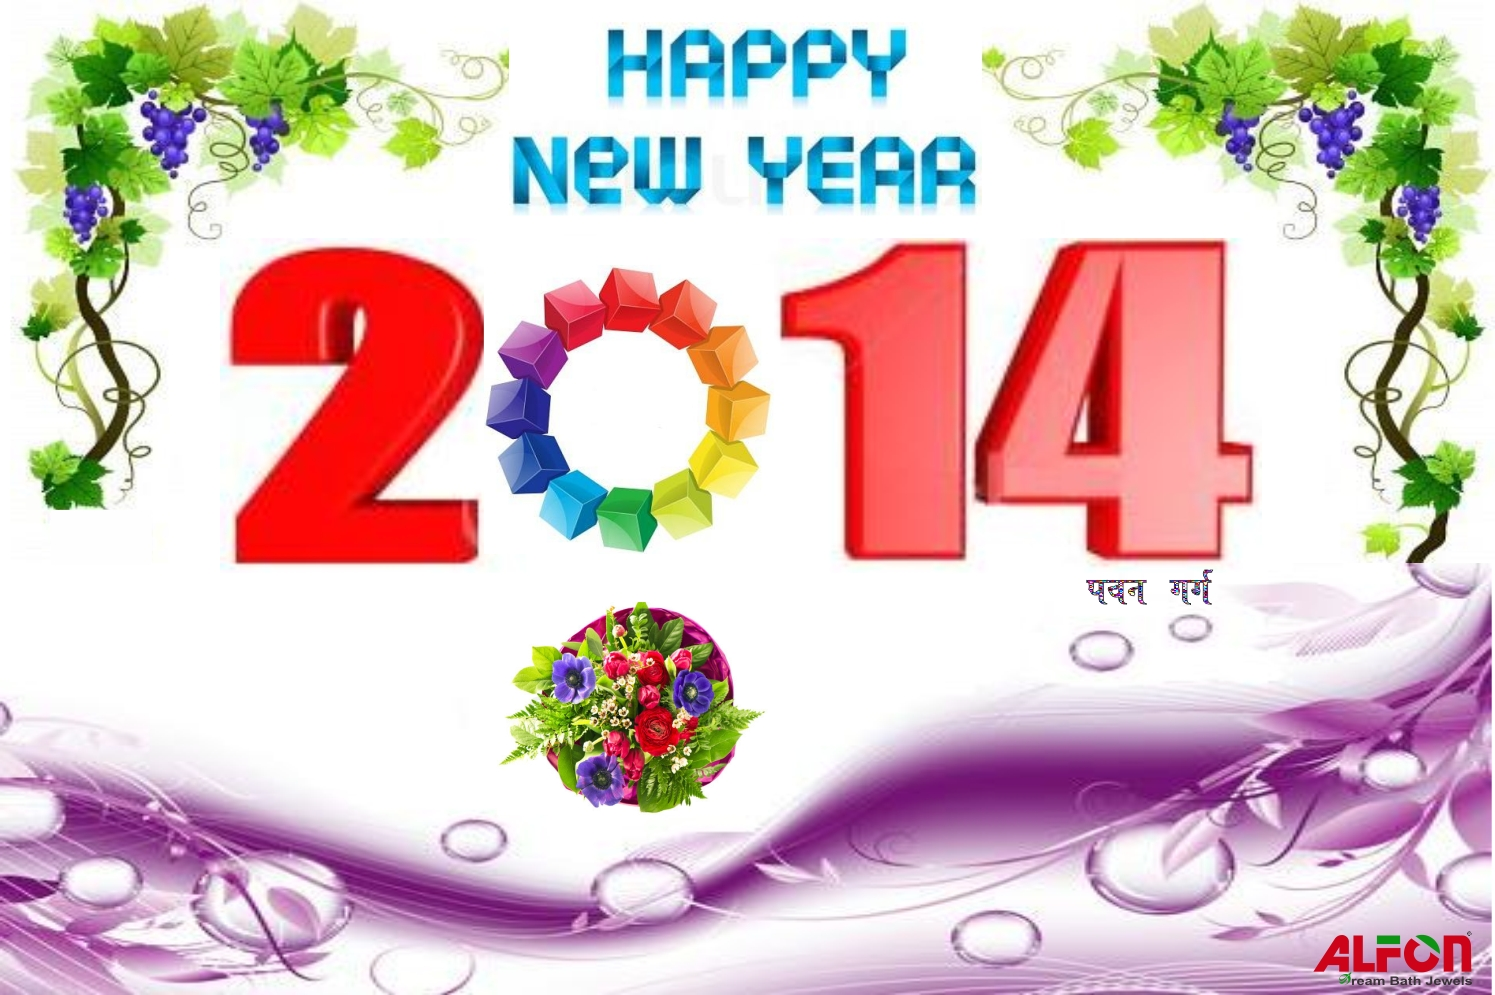 Happy New Year 2014 Quotes Collection for Friends, BF, GF